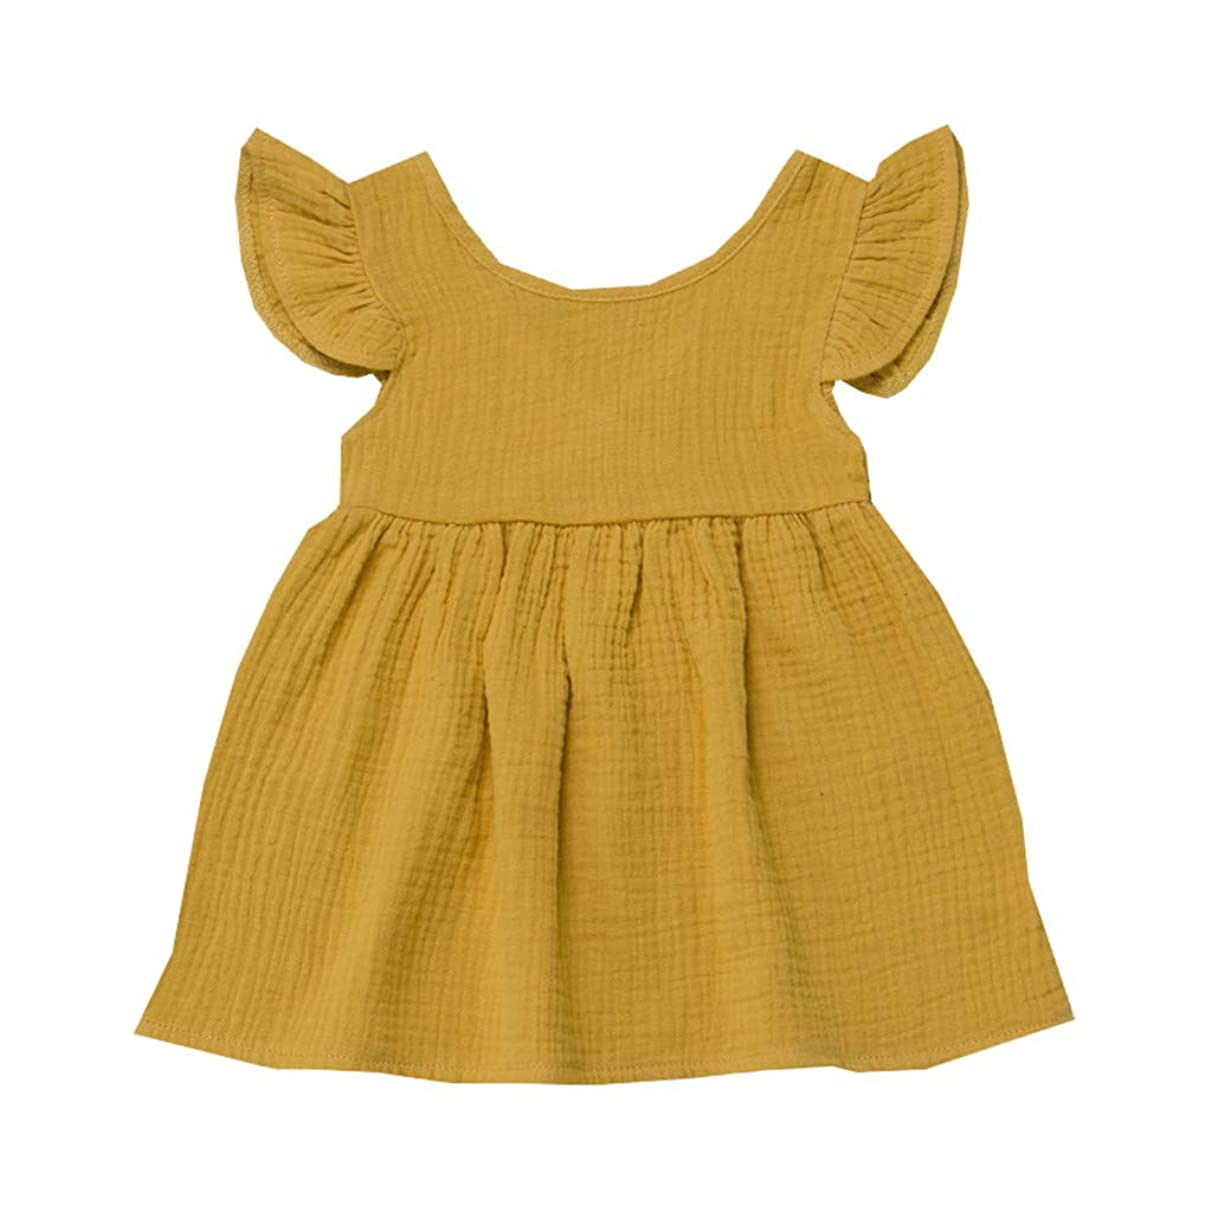 Huarll Toddler Baby Girls Dress Solid Linen Ruffle Sleeve Sleeveless Sundress Summer Party Casual Outfits Clothes